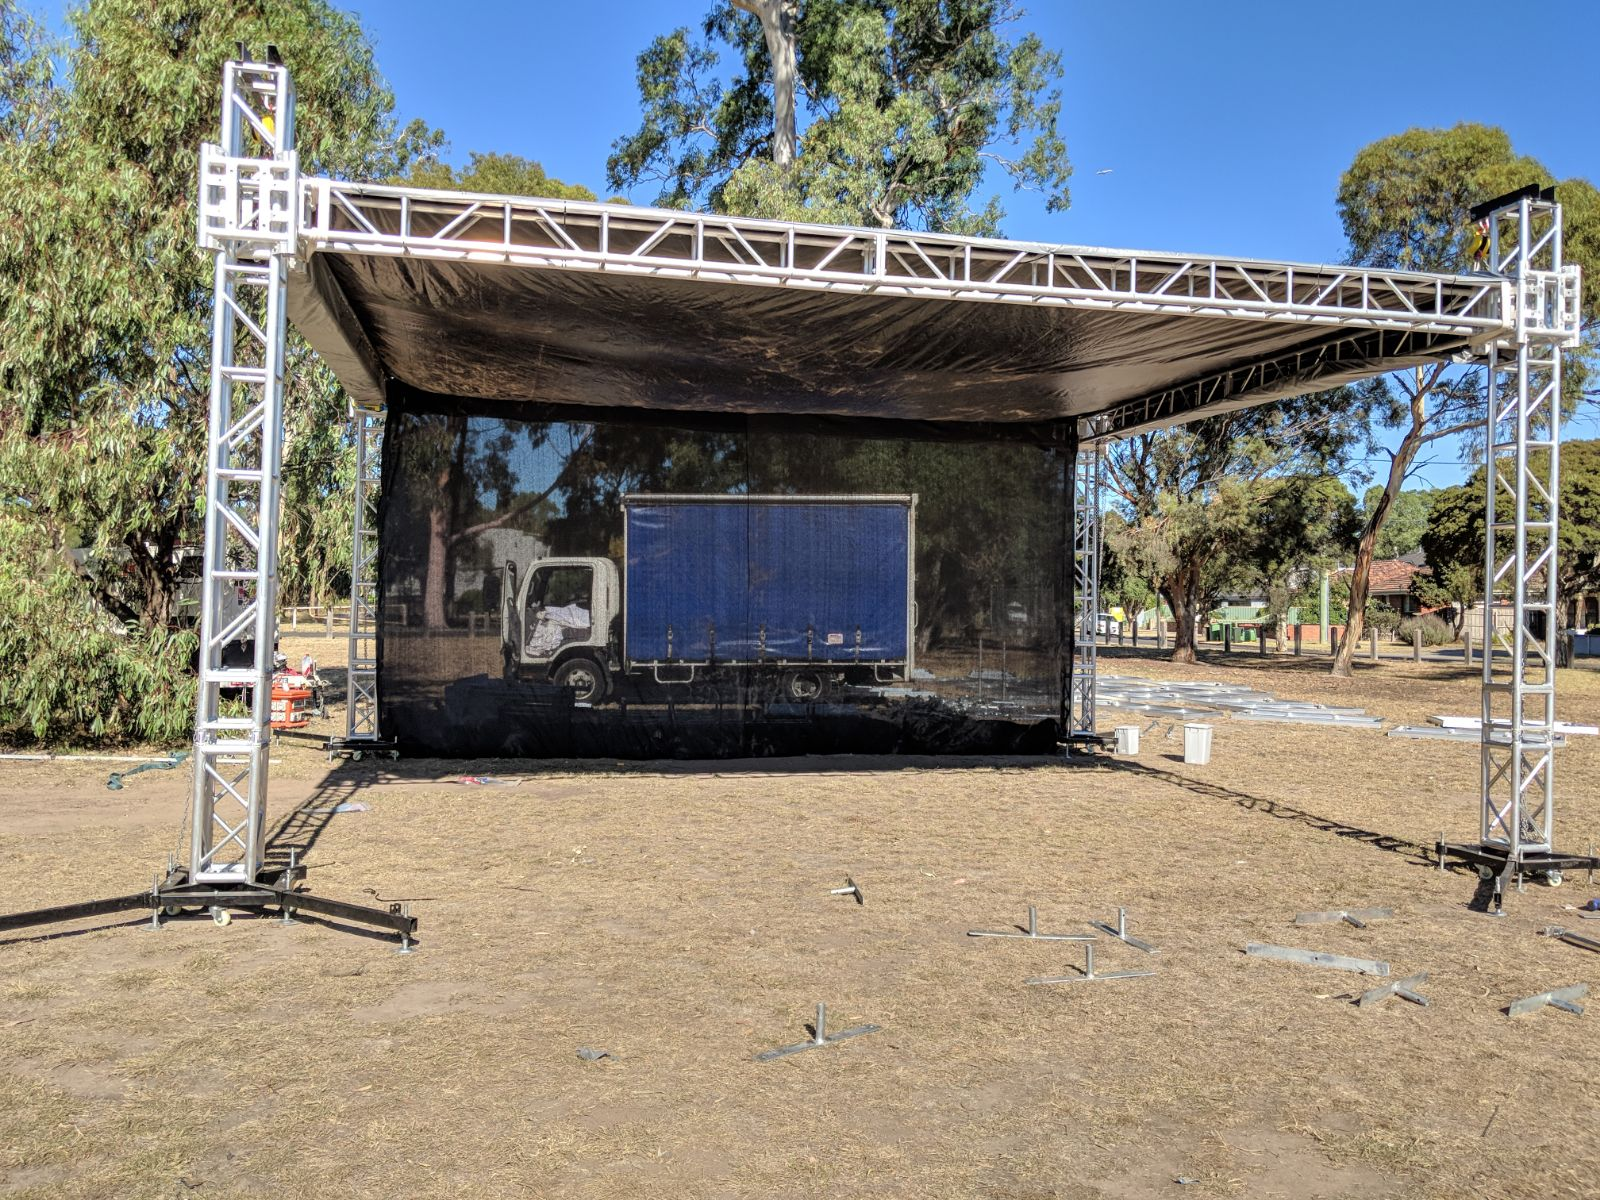 Staging|Heavy Duty Event Stage Hire in South East,Western,North suburb